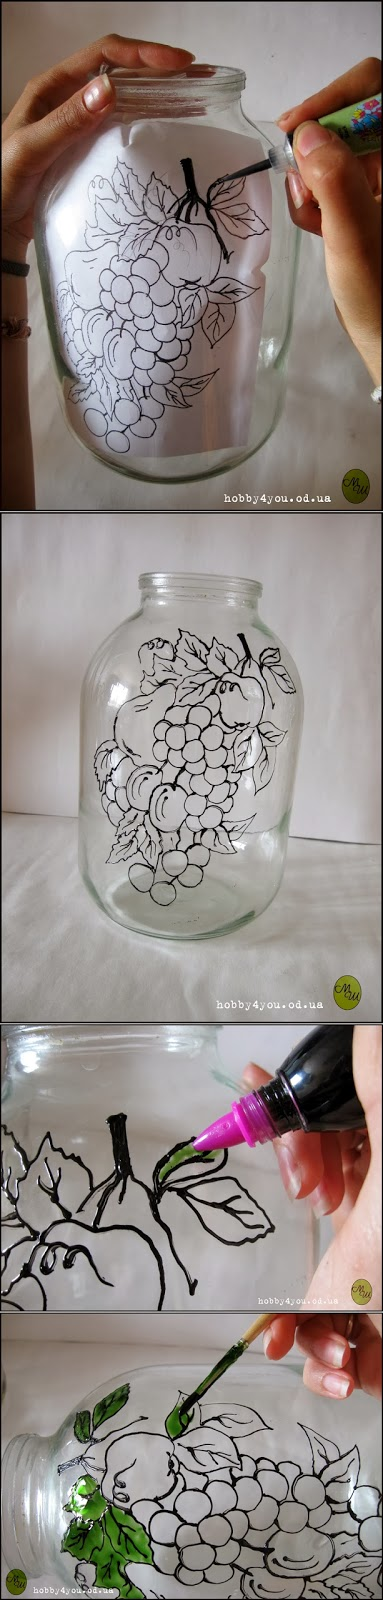 diy glass art diy craft projects